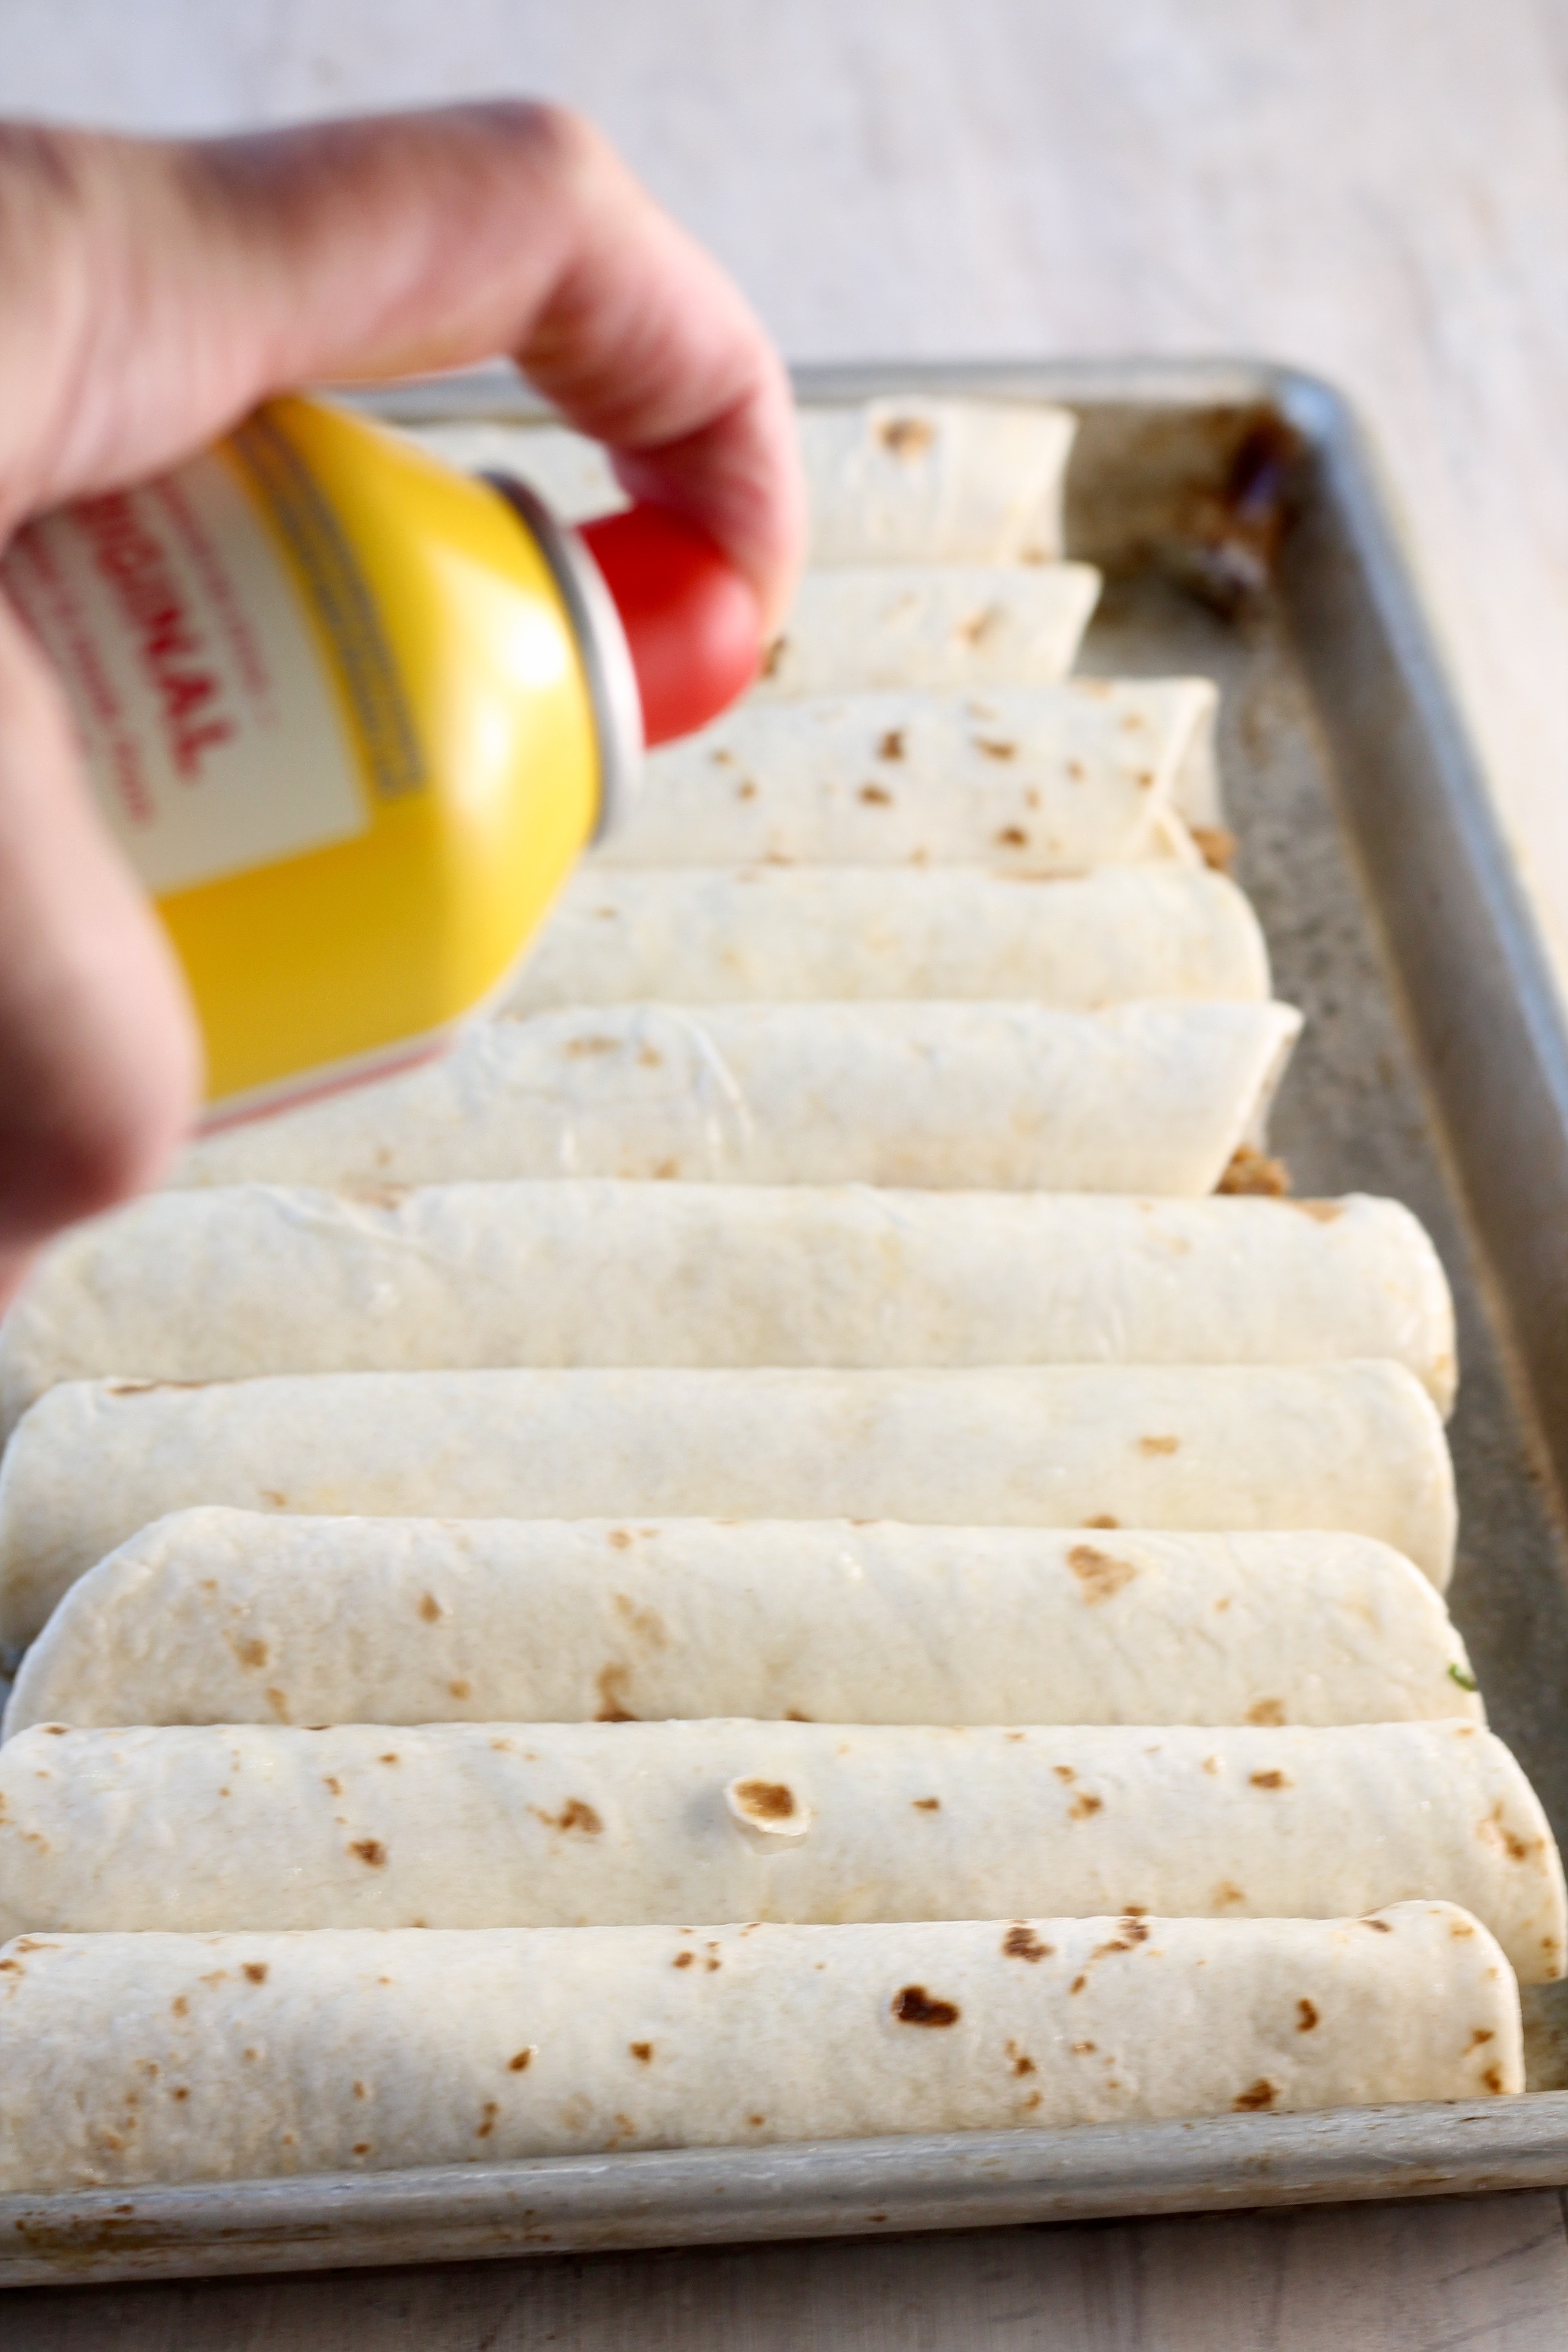 Spray brisket taquitos with non stick cooking spray to help them brown